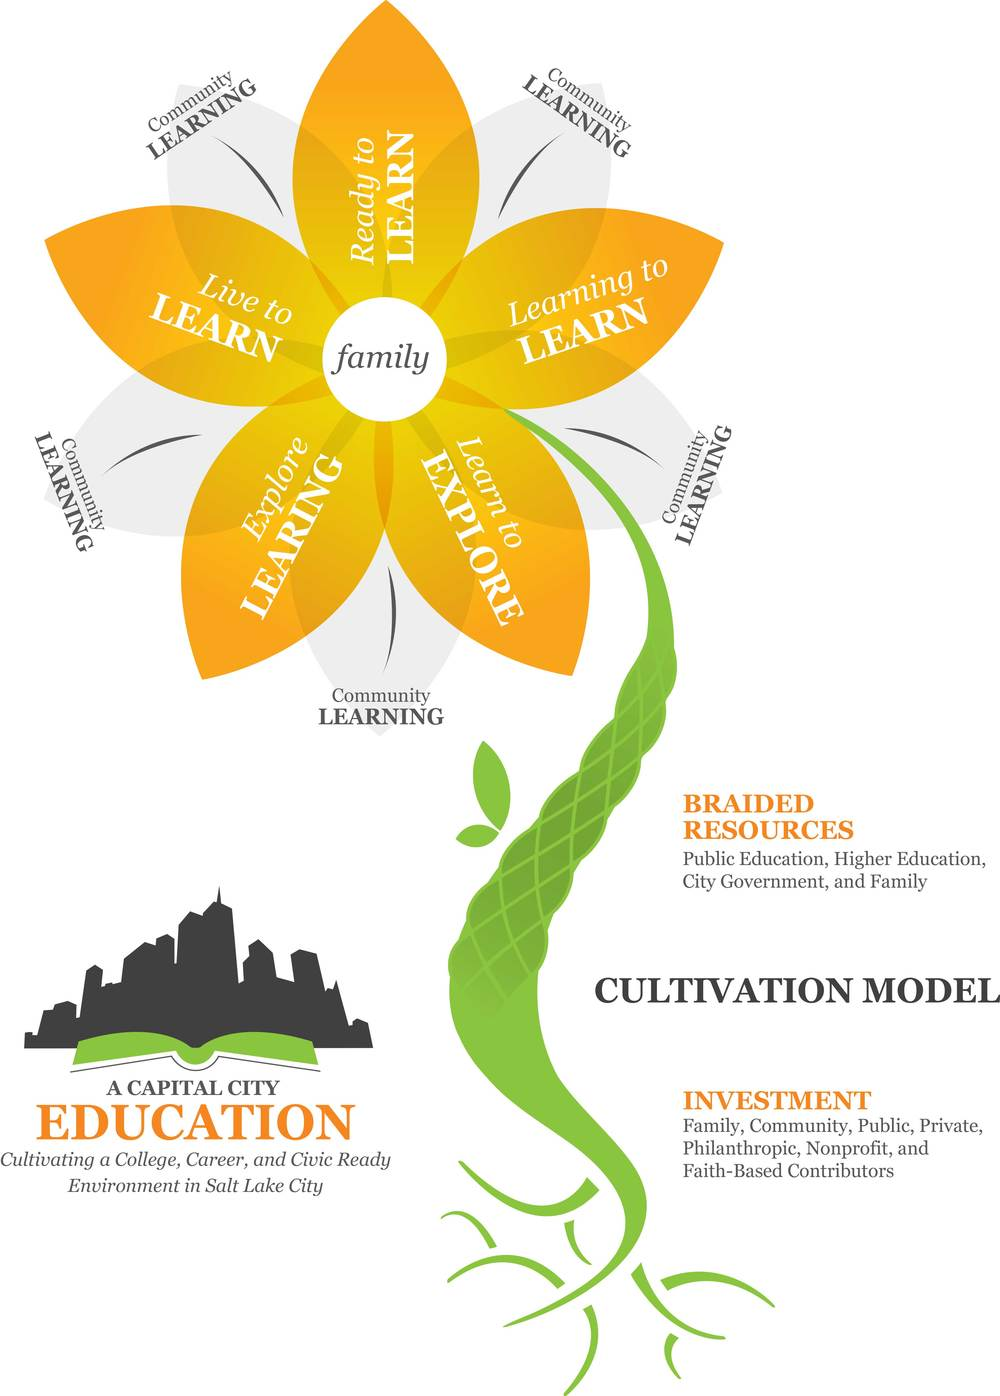 CultivationModelFlower.png